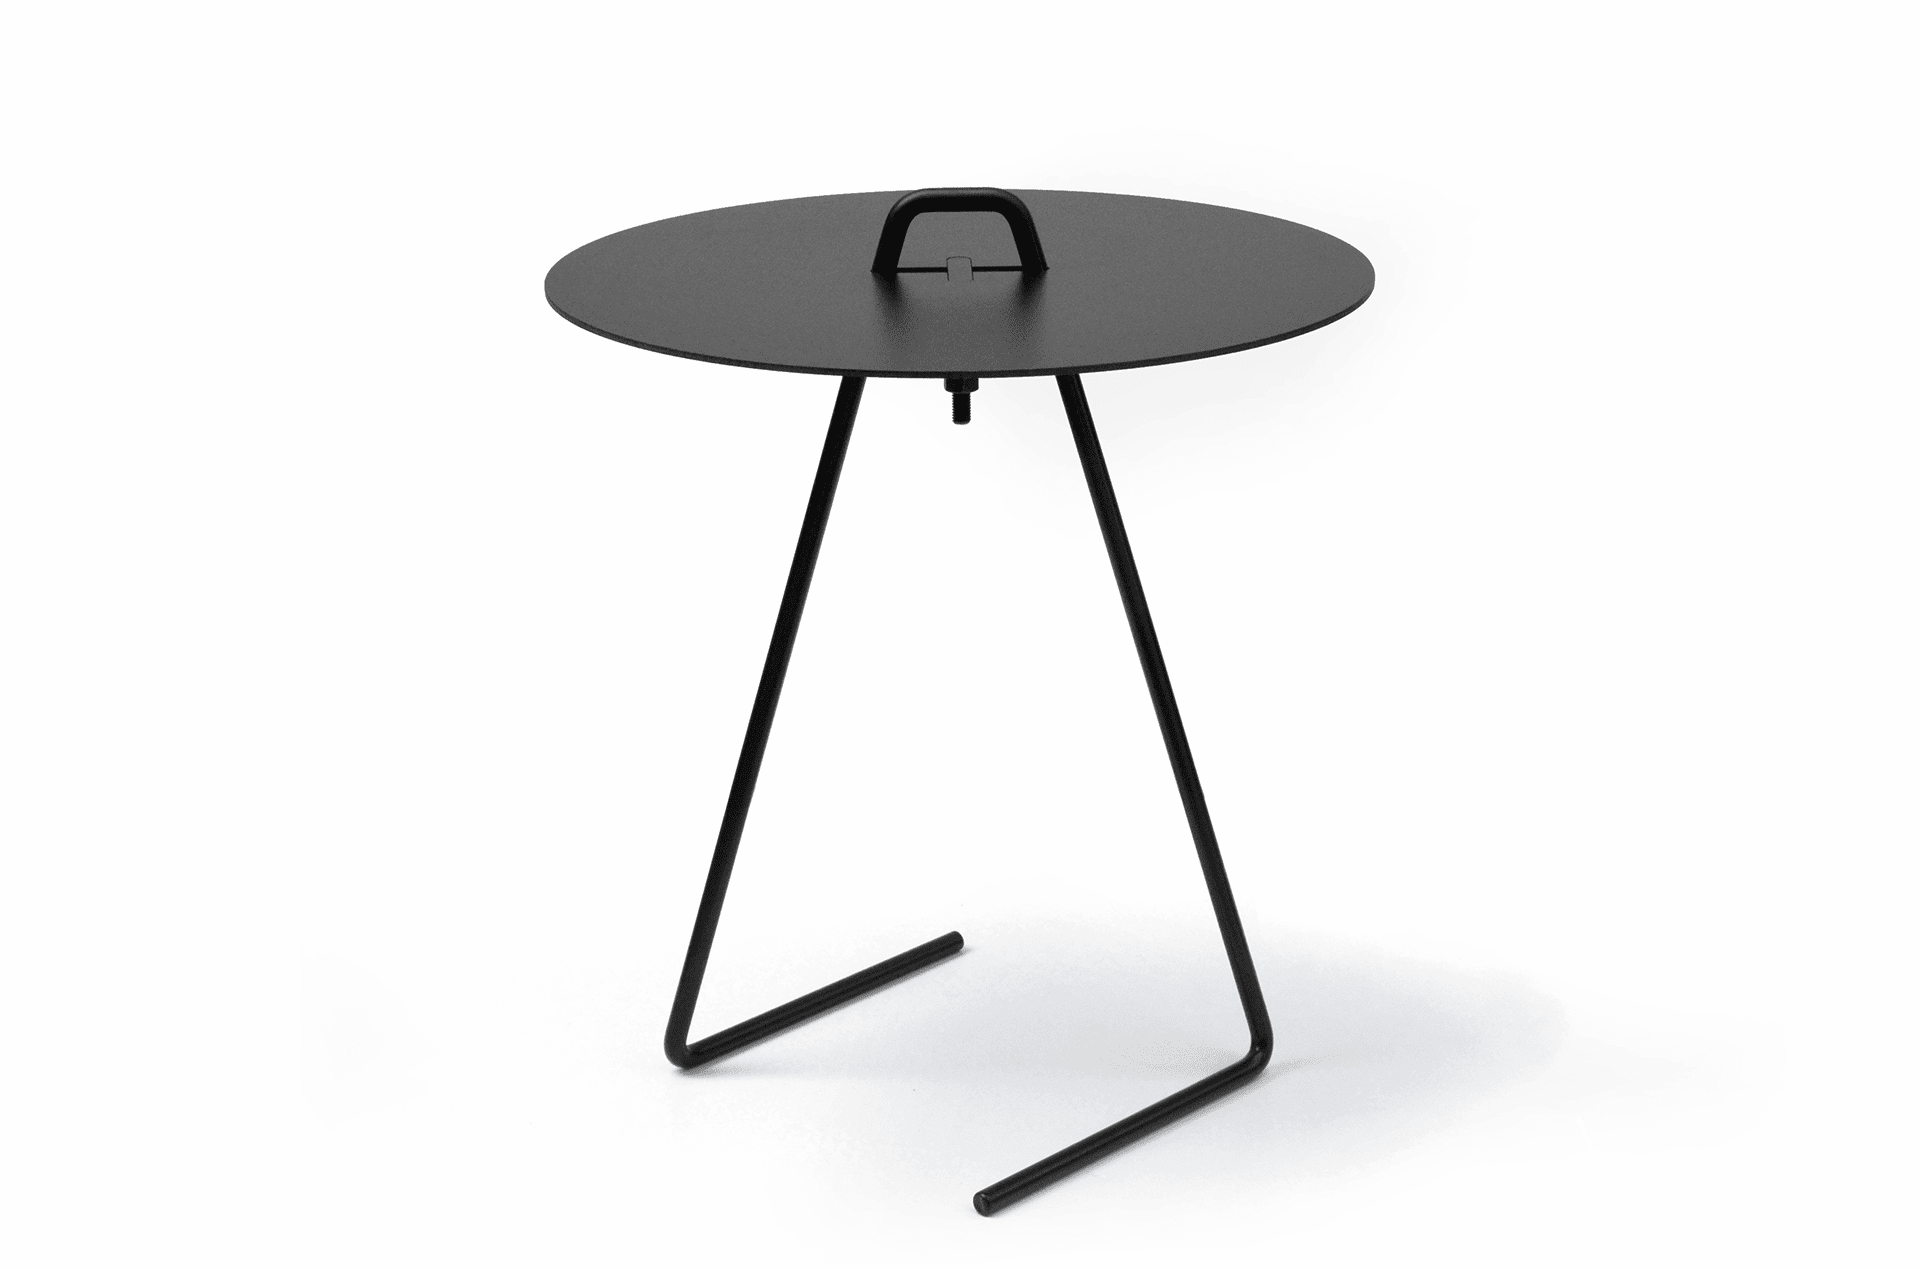 Table basse MDF, Side Table by Moebe-couleur noir-dispo sur PARIDEO design durable